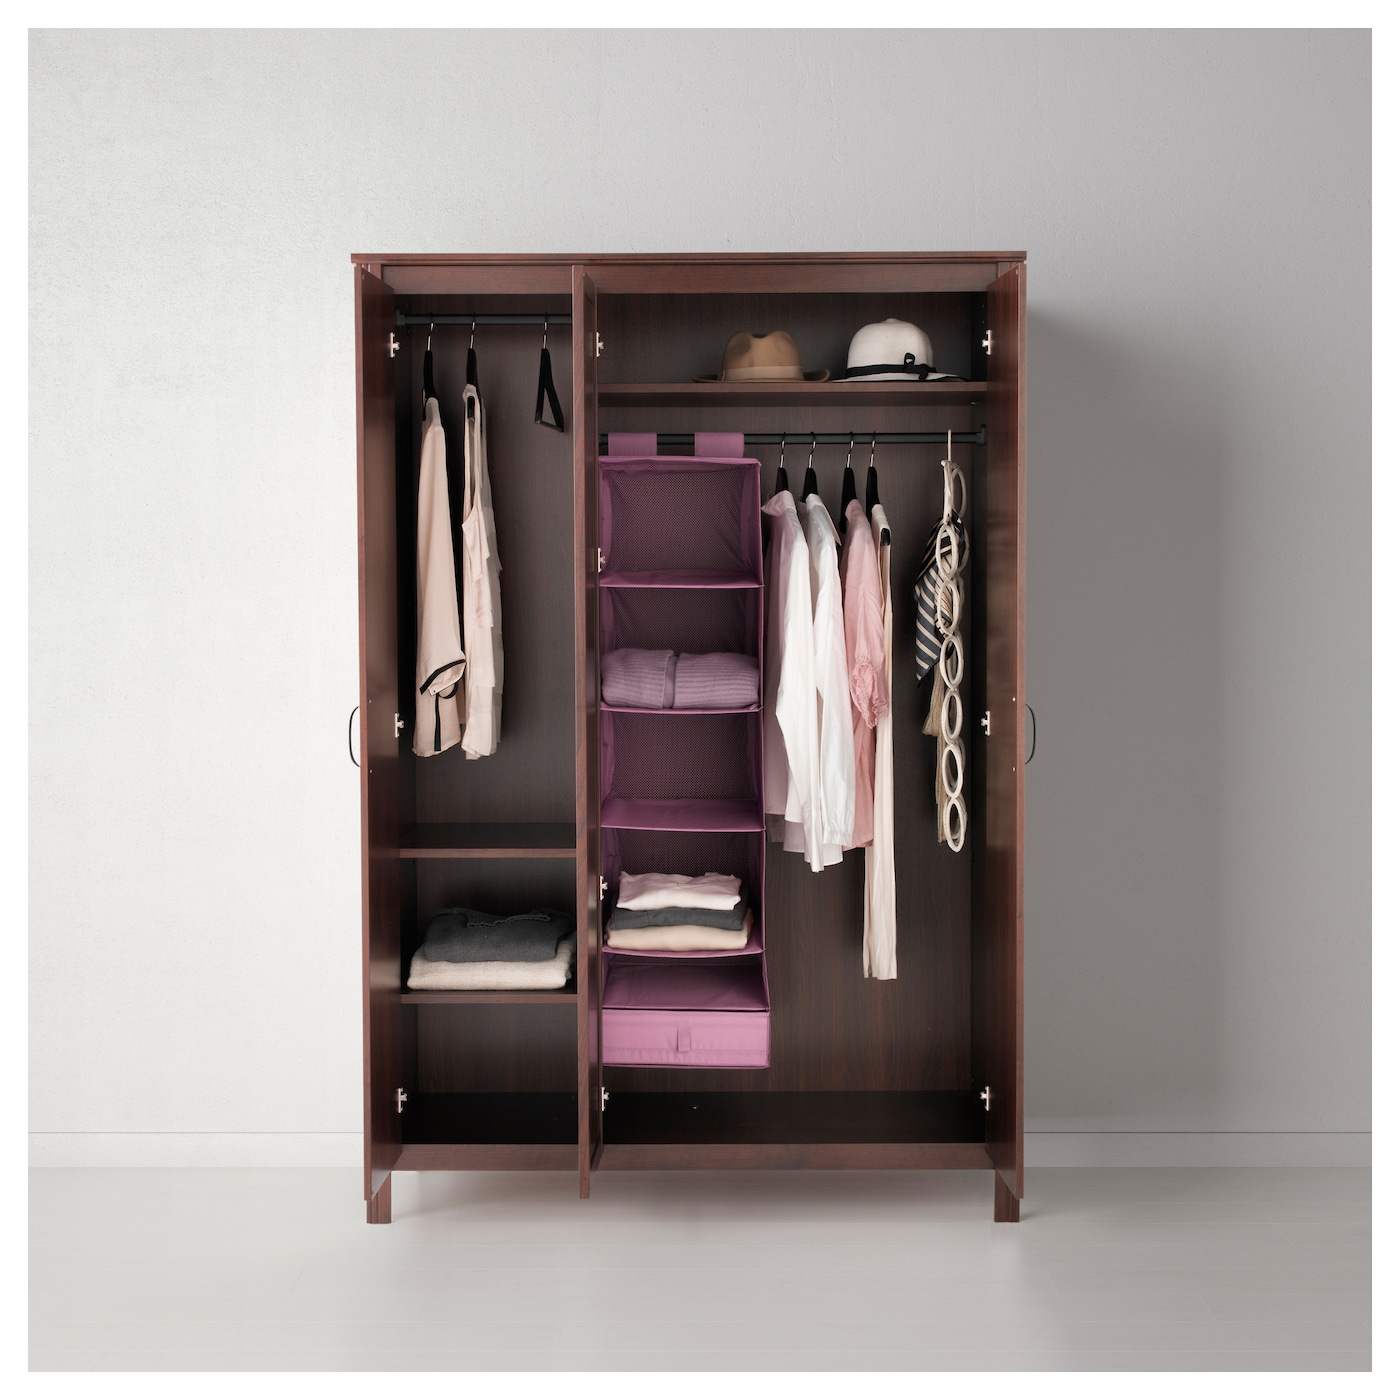 Brusali wardrobe with 3 doors brown 131x190 cm ikea - Customiser armoire ikea ...